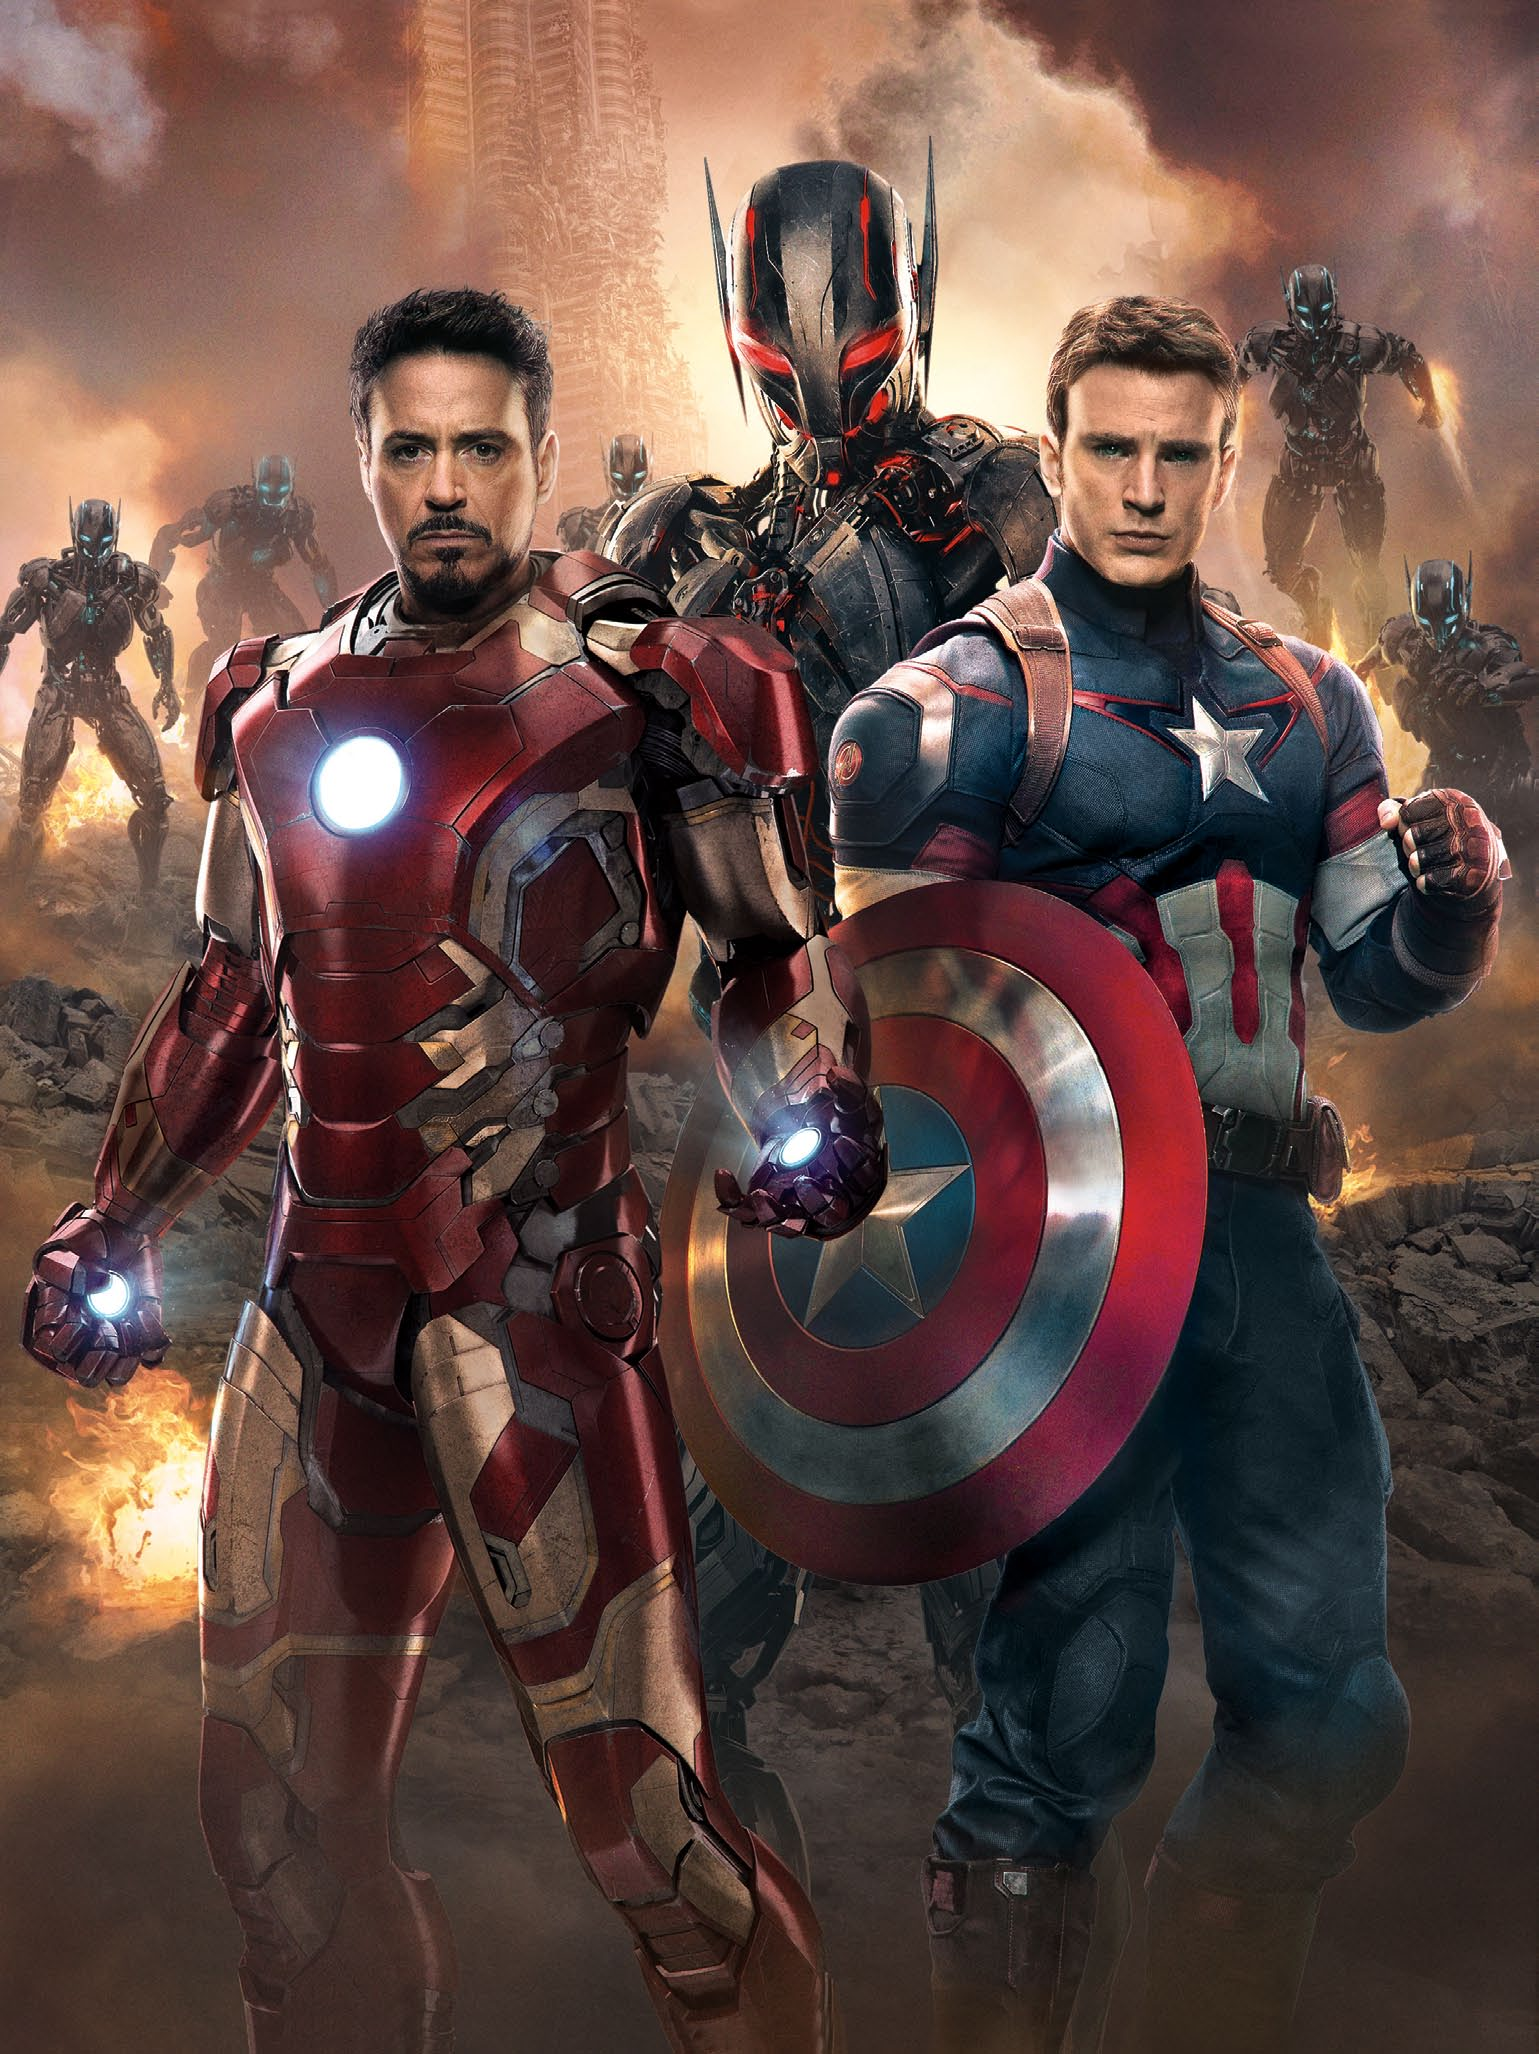 image avengers age of ultron hd poster 40247 jpg moviepedia